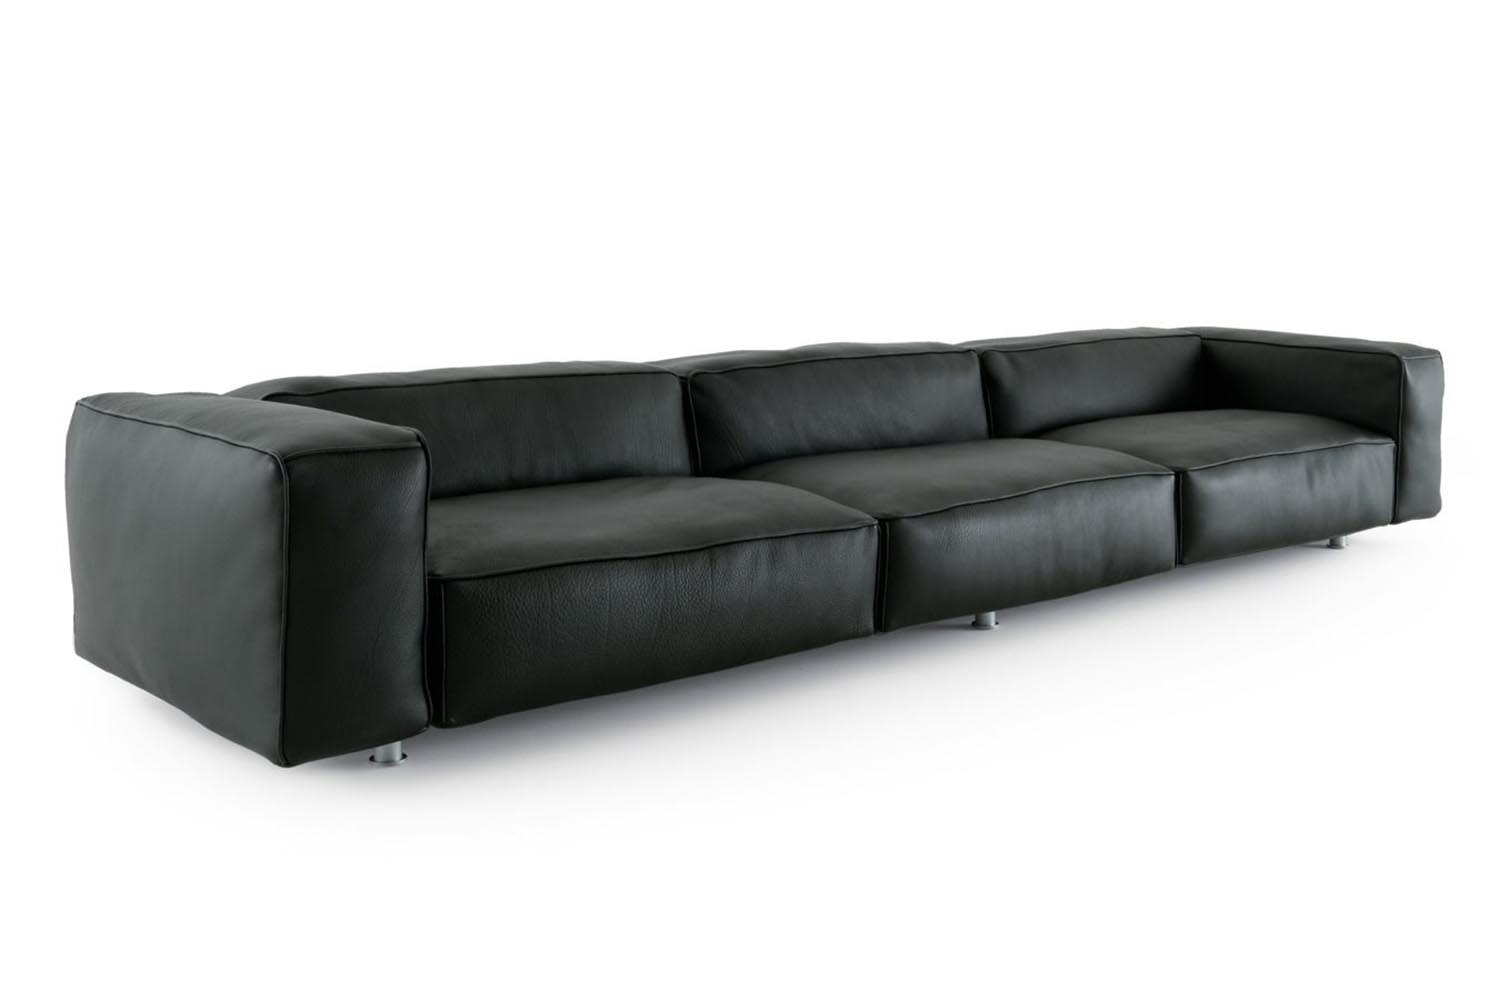 Sofa' Sofa by Francesco Binfare for Edra